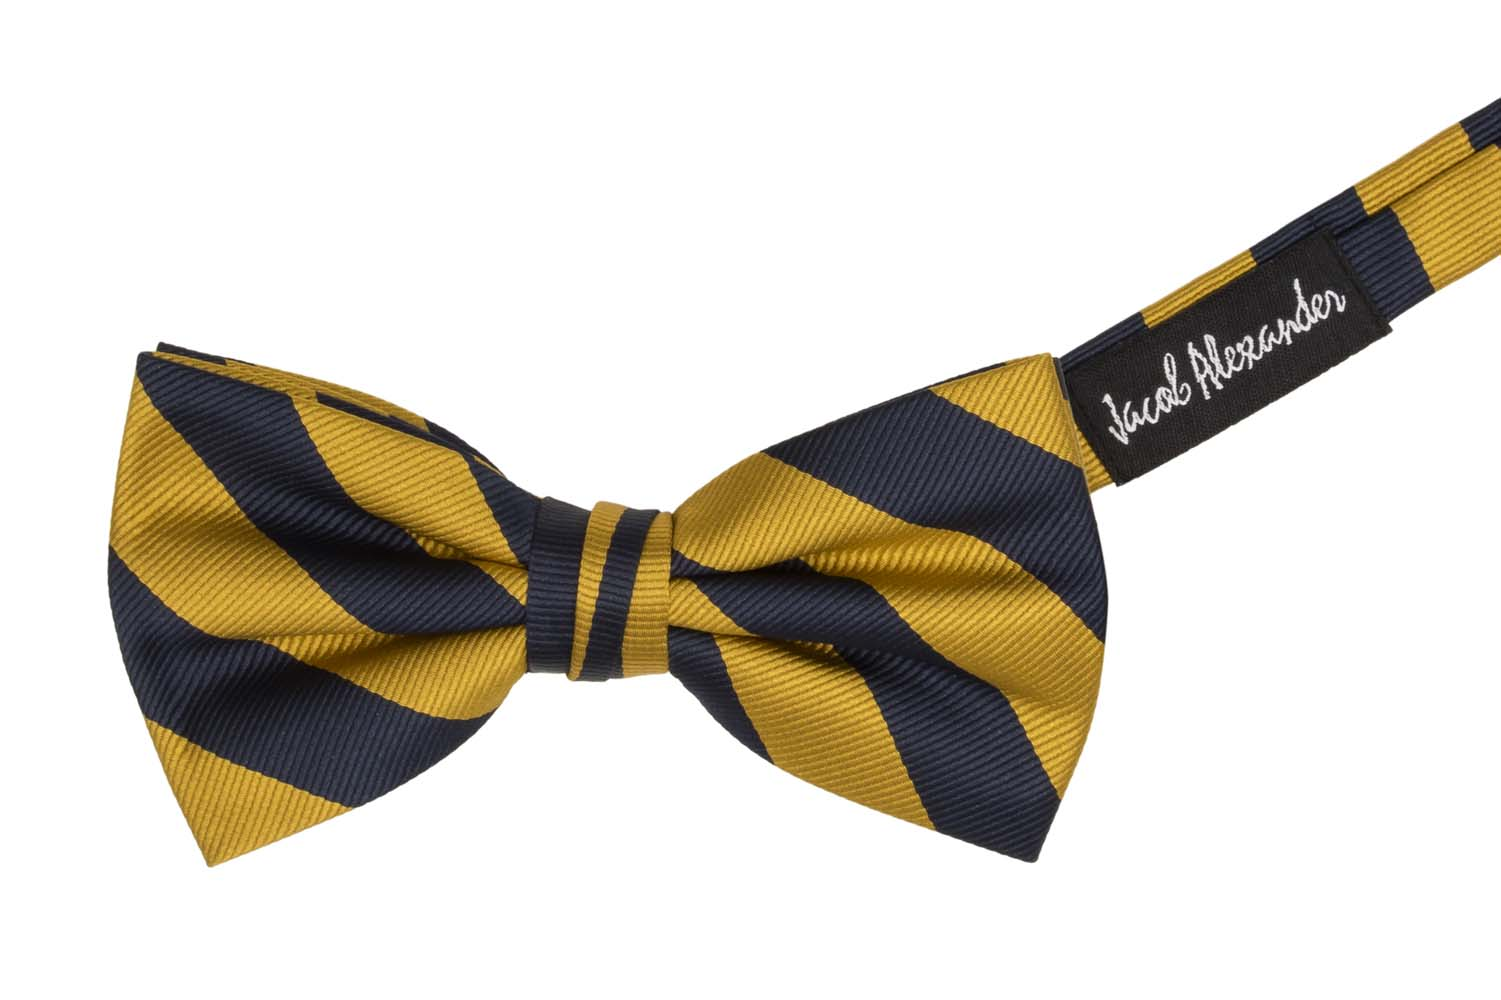 Jacob-Alexander-Stripe-Woven-Men-039-s-College-Striped-Pretied-Bowtie thumbnail 6